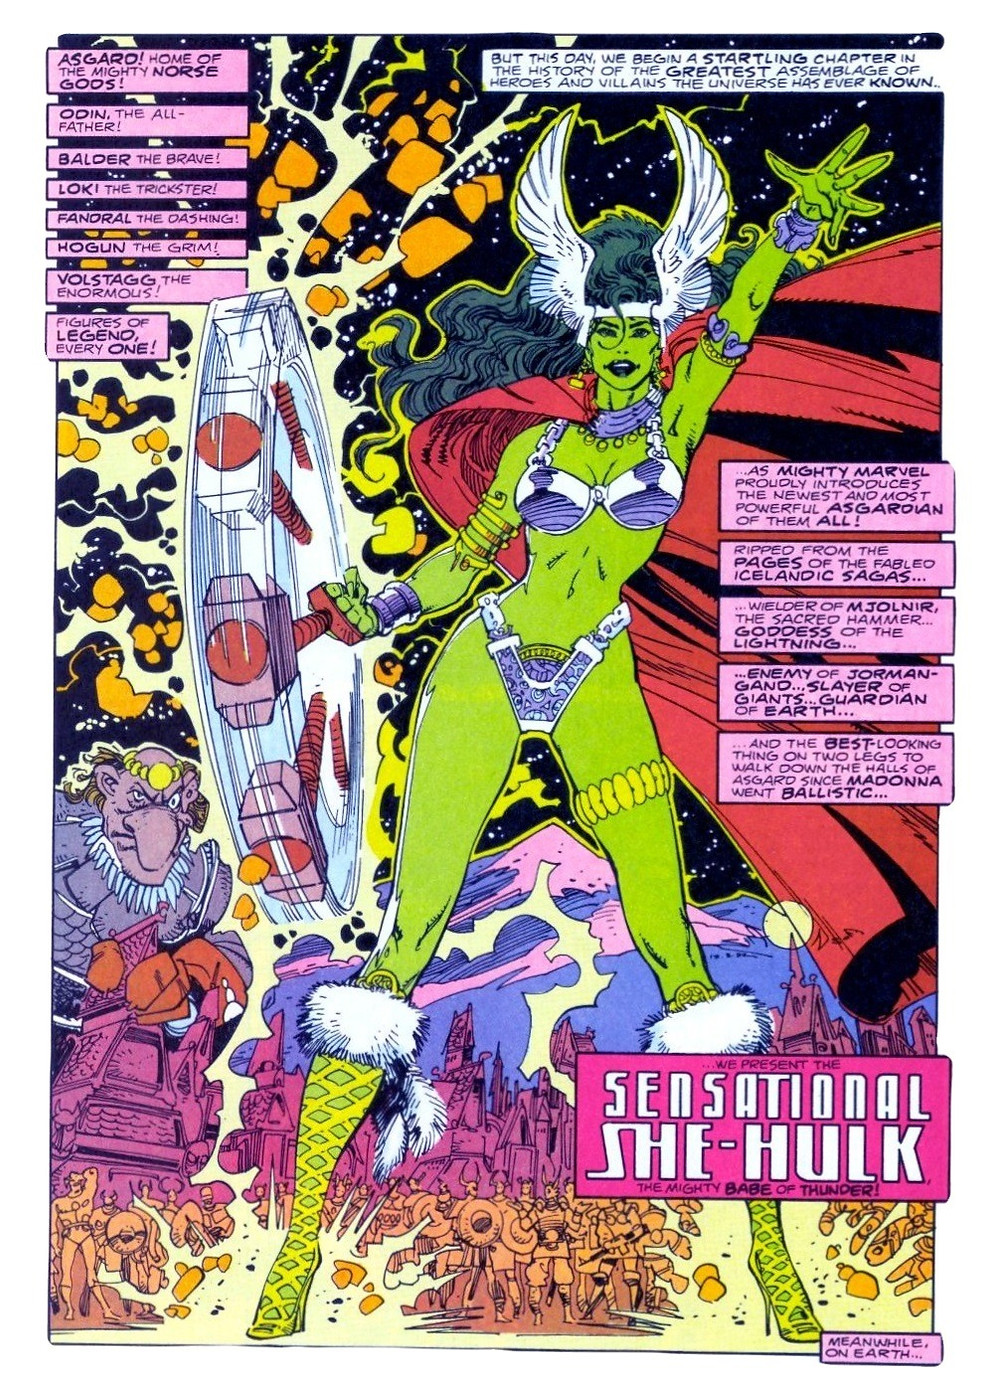 "a full page spread. There are several pink narration boxes on the top left, listing Asgardian heroes, and calling them ""Figures of legend, every one!"" On the top right, a white narration box explains ""But this day, we begin a startling chapter in the history of the greatest assemblage of heroes and villains the world has ever known... She-Hulk is facing towards the reader with her legs in a far apart stance with light green skin dressed in a silver-metallic bikini, a gold garter, yellow fishnet knee-high boots with fur on the top, a long red cloak that is floating in the wind, and a silver headband with wings rising above her long curly green hair. She is also swinging what appears to be Mjölnir, Thor's hammer, in her right hand. On the middle right of the page, more pink narration boxes continue ""as Might Marvel proudly presents the newest and most powerful Asgardian of them ALL! Ripped from the pages of the fabled Icelandic sagas… wielder of Mjolnir, the sacred hammer… the Goddess of Lightning… Enemy of Jormangand… Slayer of Giants… Guardian of Earth… and the BEST-looking thing on two legs to walk down the halls of Asgard since Madonna went ballistic…"" A larger, darker pink box says ""...we present the SENSATIONAL SHE-HULK, the Mighty Babe of Thunder."" She is meant to resemble Thor. There are rocks exploding in the dark sky behind She-Hulk and a blue and pink mountain in the distance, and below it the outlines of an Asgardian village and its inhabitants. To the left of the page is a goblin with a gold medallion on his head."